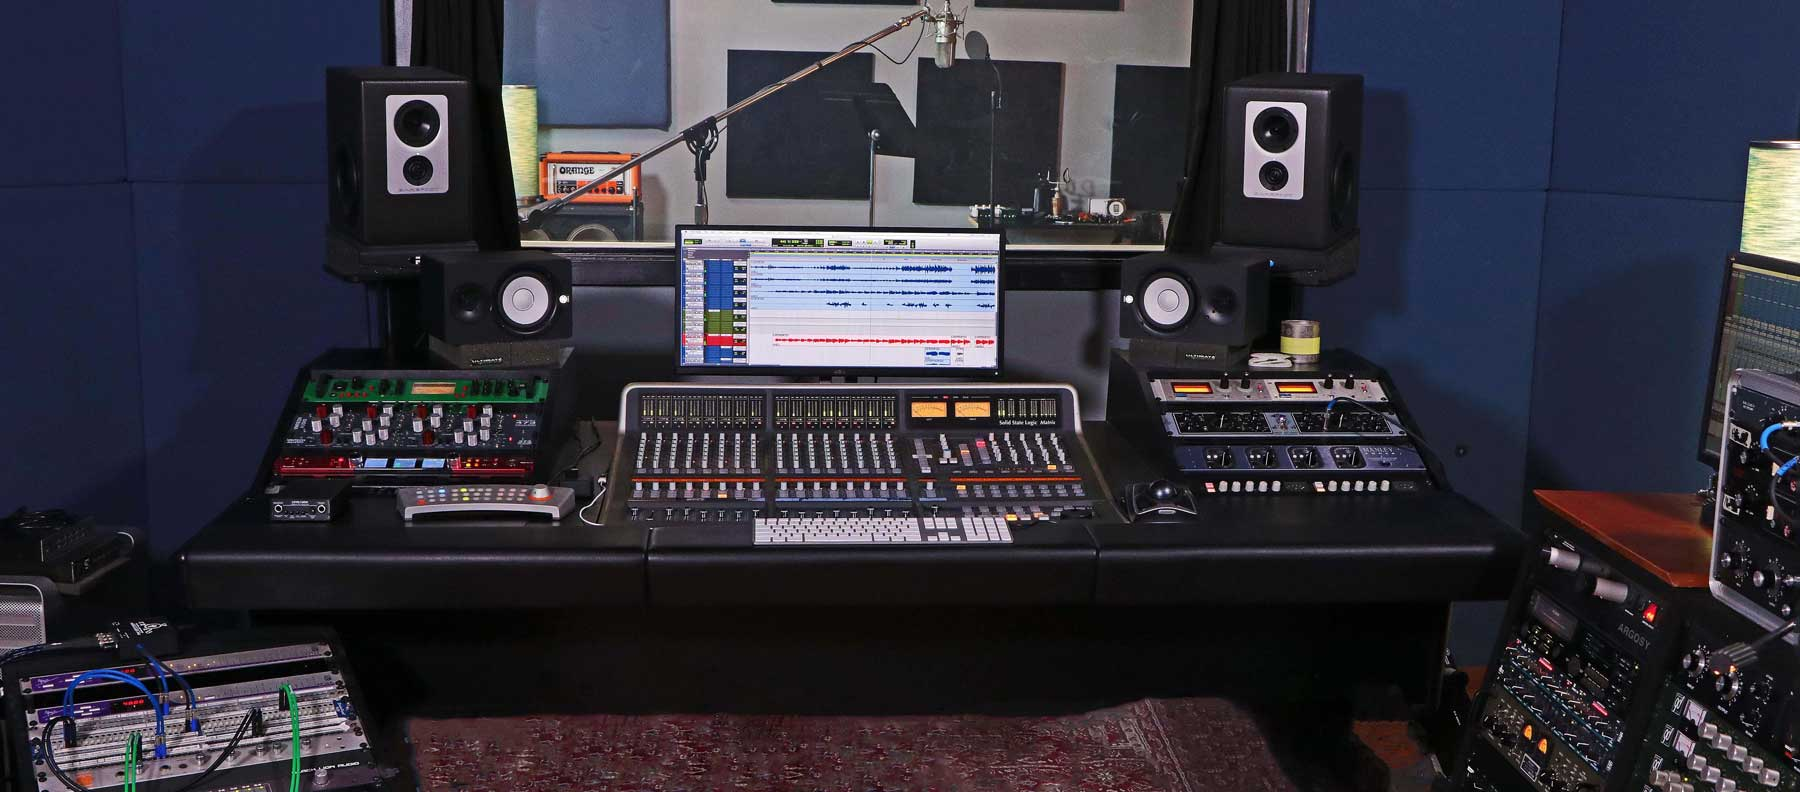 Frequency Recording Studio